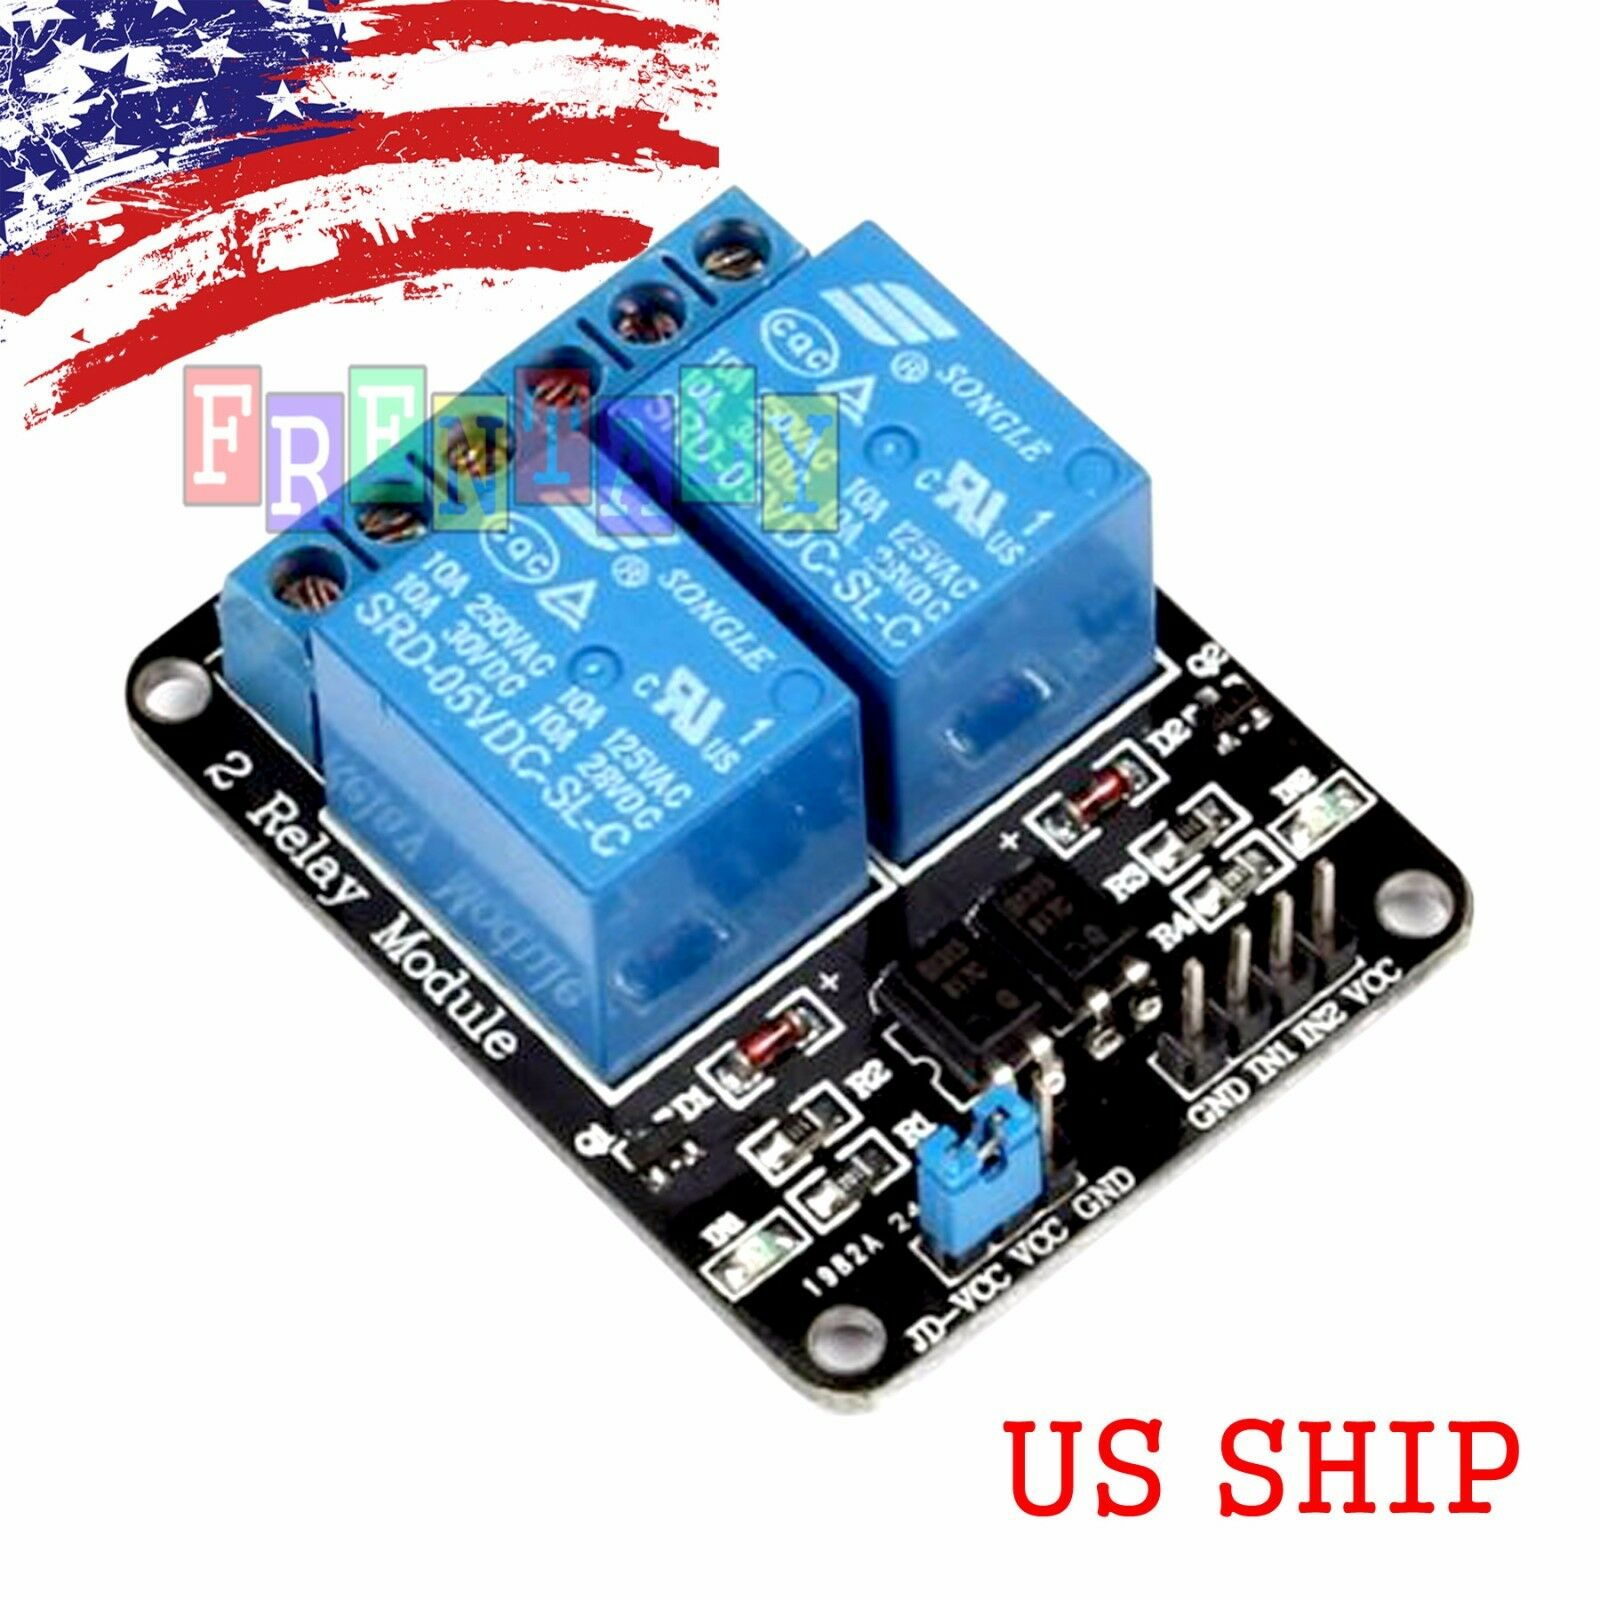 2 Channel Dc 5v Relay Switch Board Module For Arduino Raspberry Pi Arm Avr 449 1 Of 4free Shipping